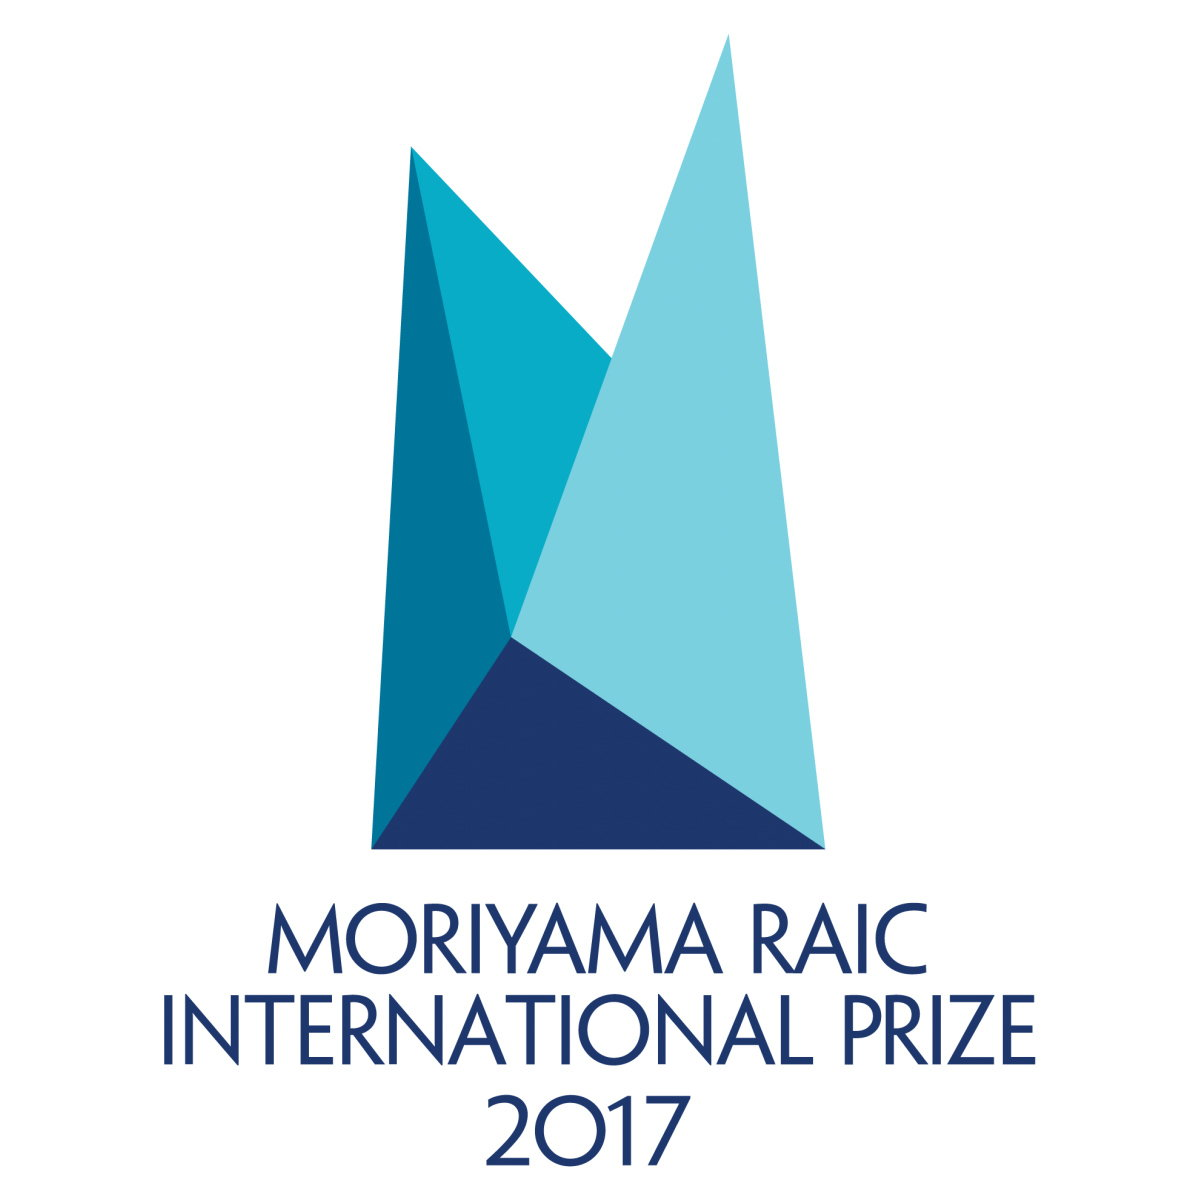 2017 Moriyama RAIC International Prize for Excellence in Architecture